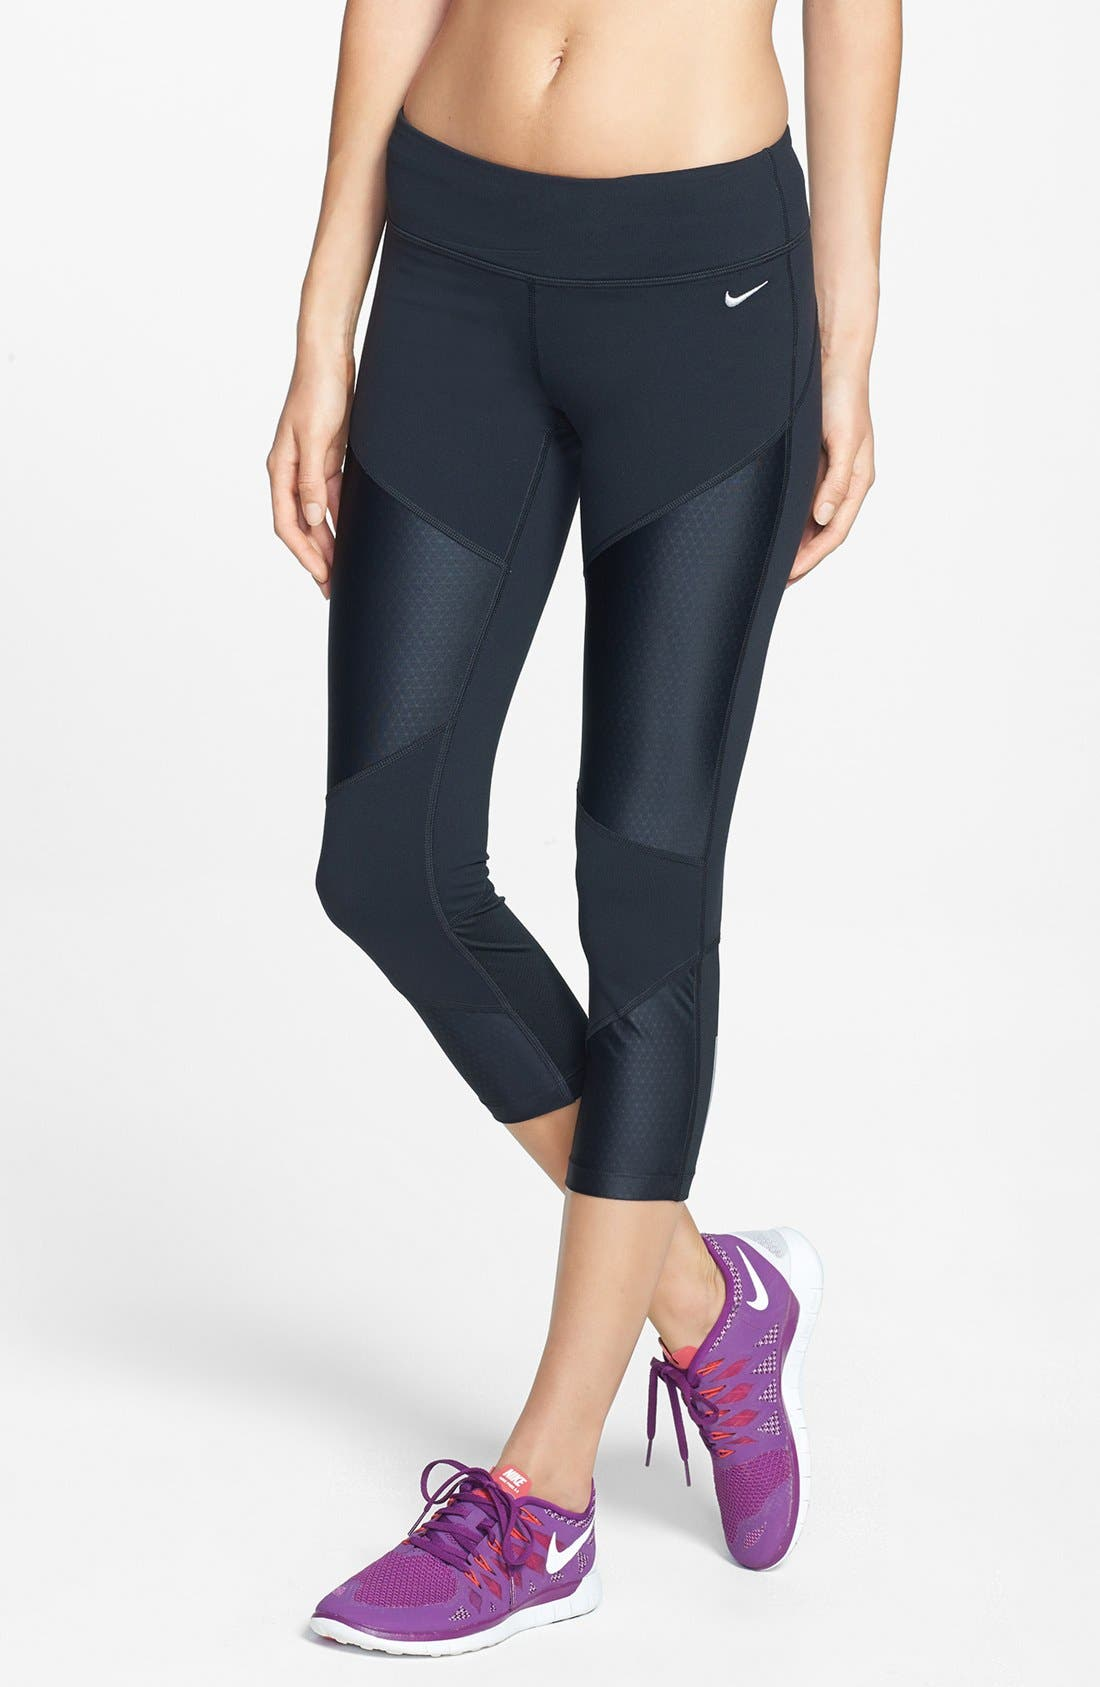 Alternate Image 1 Selected - Nike 'Strut' Dri-FIT Crop Tights